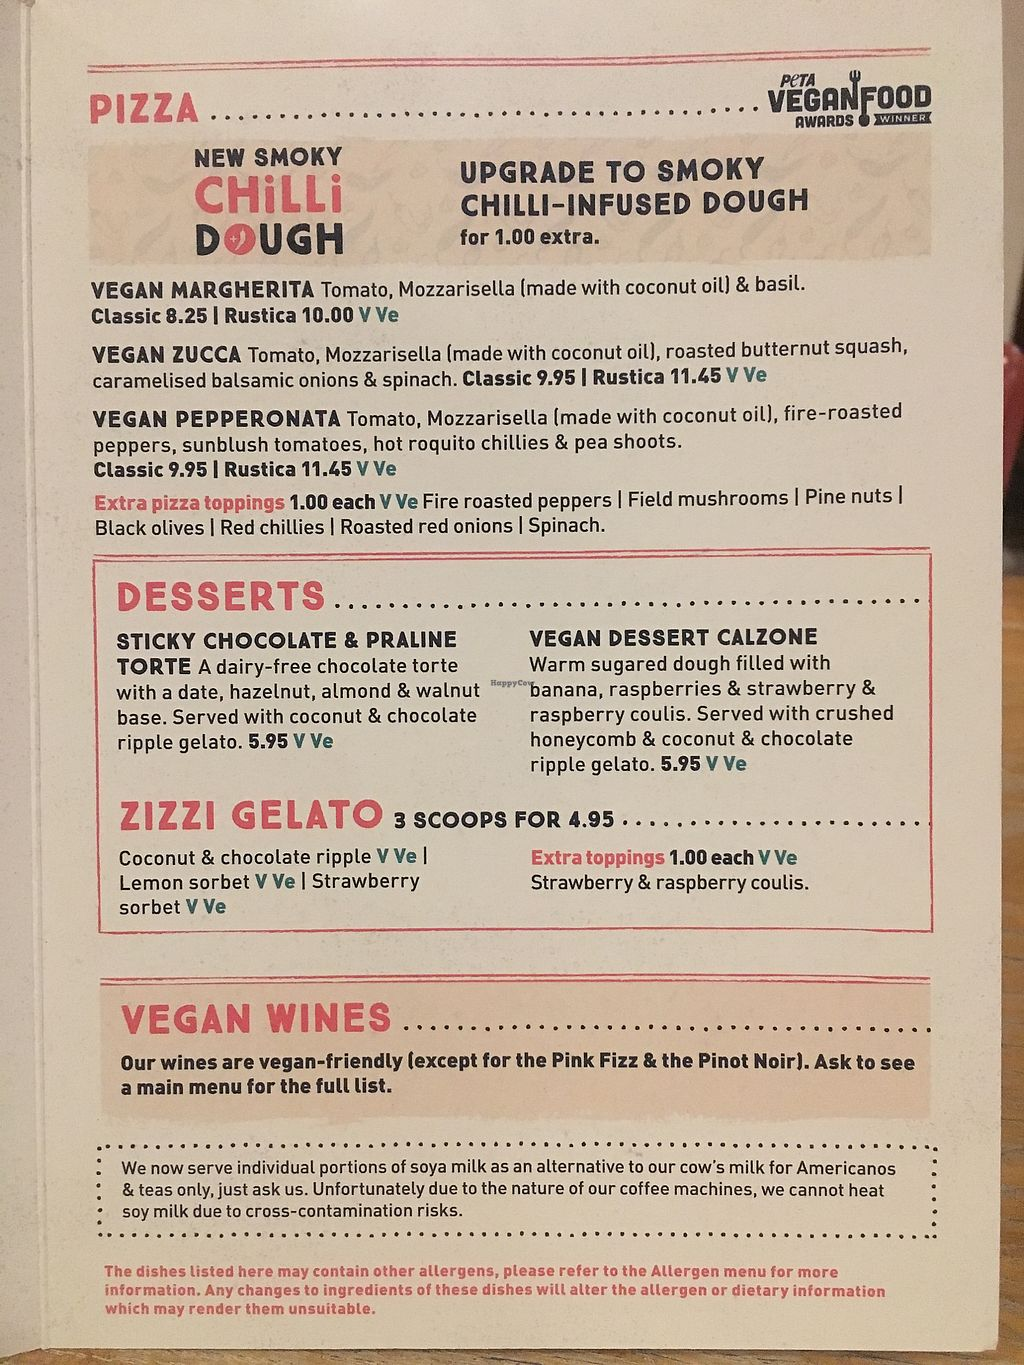 """Photo of Zizzi  by <a href=""""/members/profile/BrandonLongley"""">BrandonLongley</a> <br/>Pizza, desserts, wines <br/> March 13, 2018  - <a href='/contact/abuse/image/77580/370288'>Report</a>"""